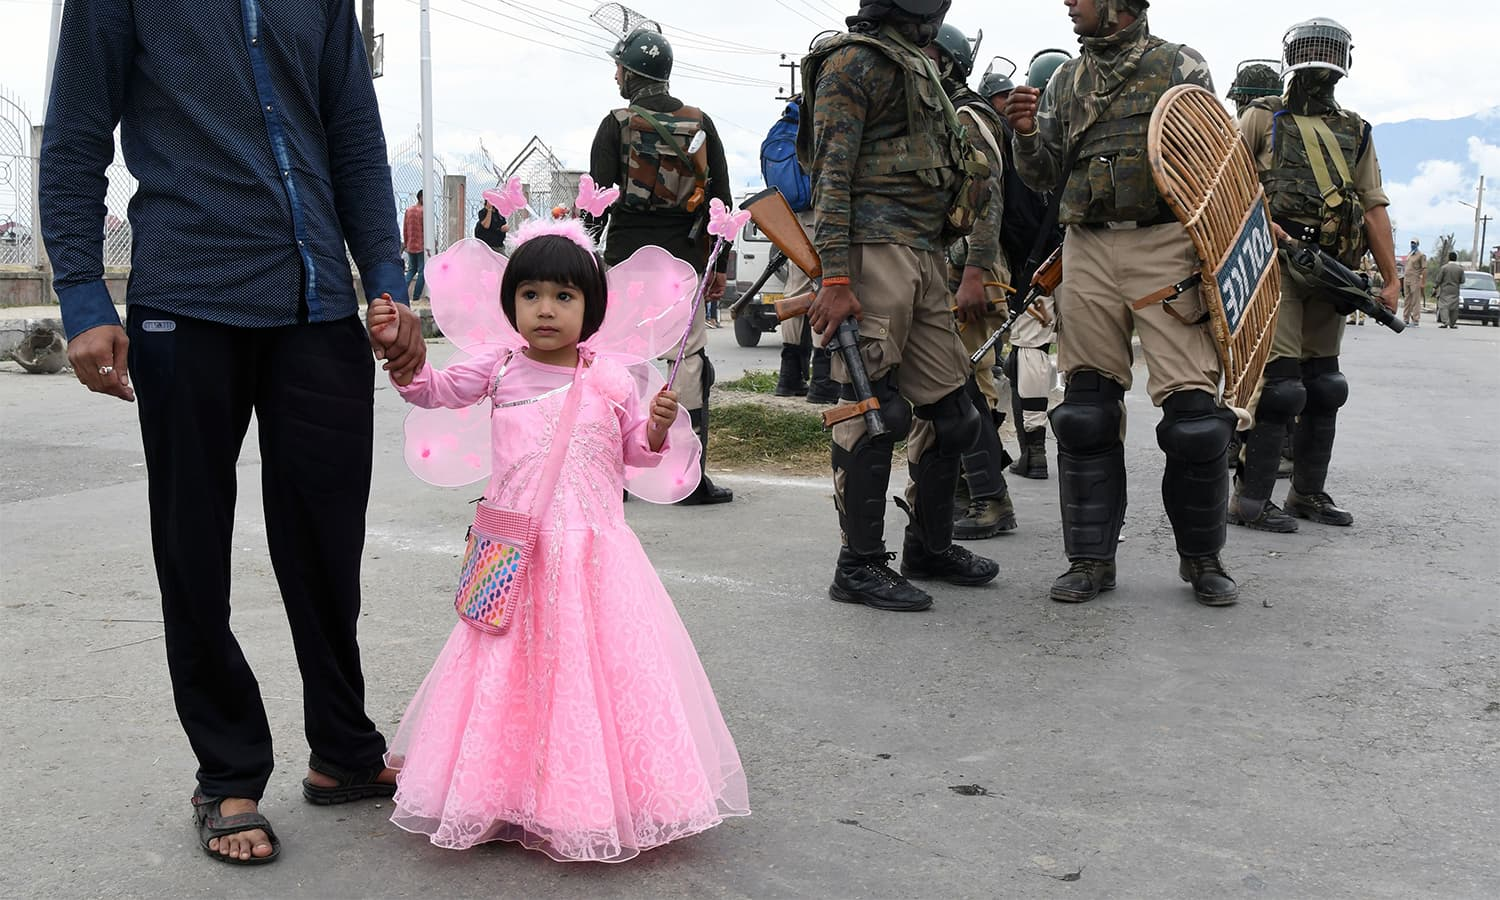 A young girl in Srinagar, India-held Kashmir looks on.—AFP